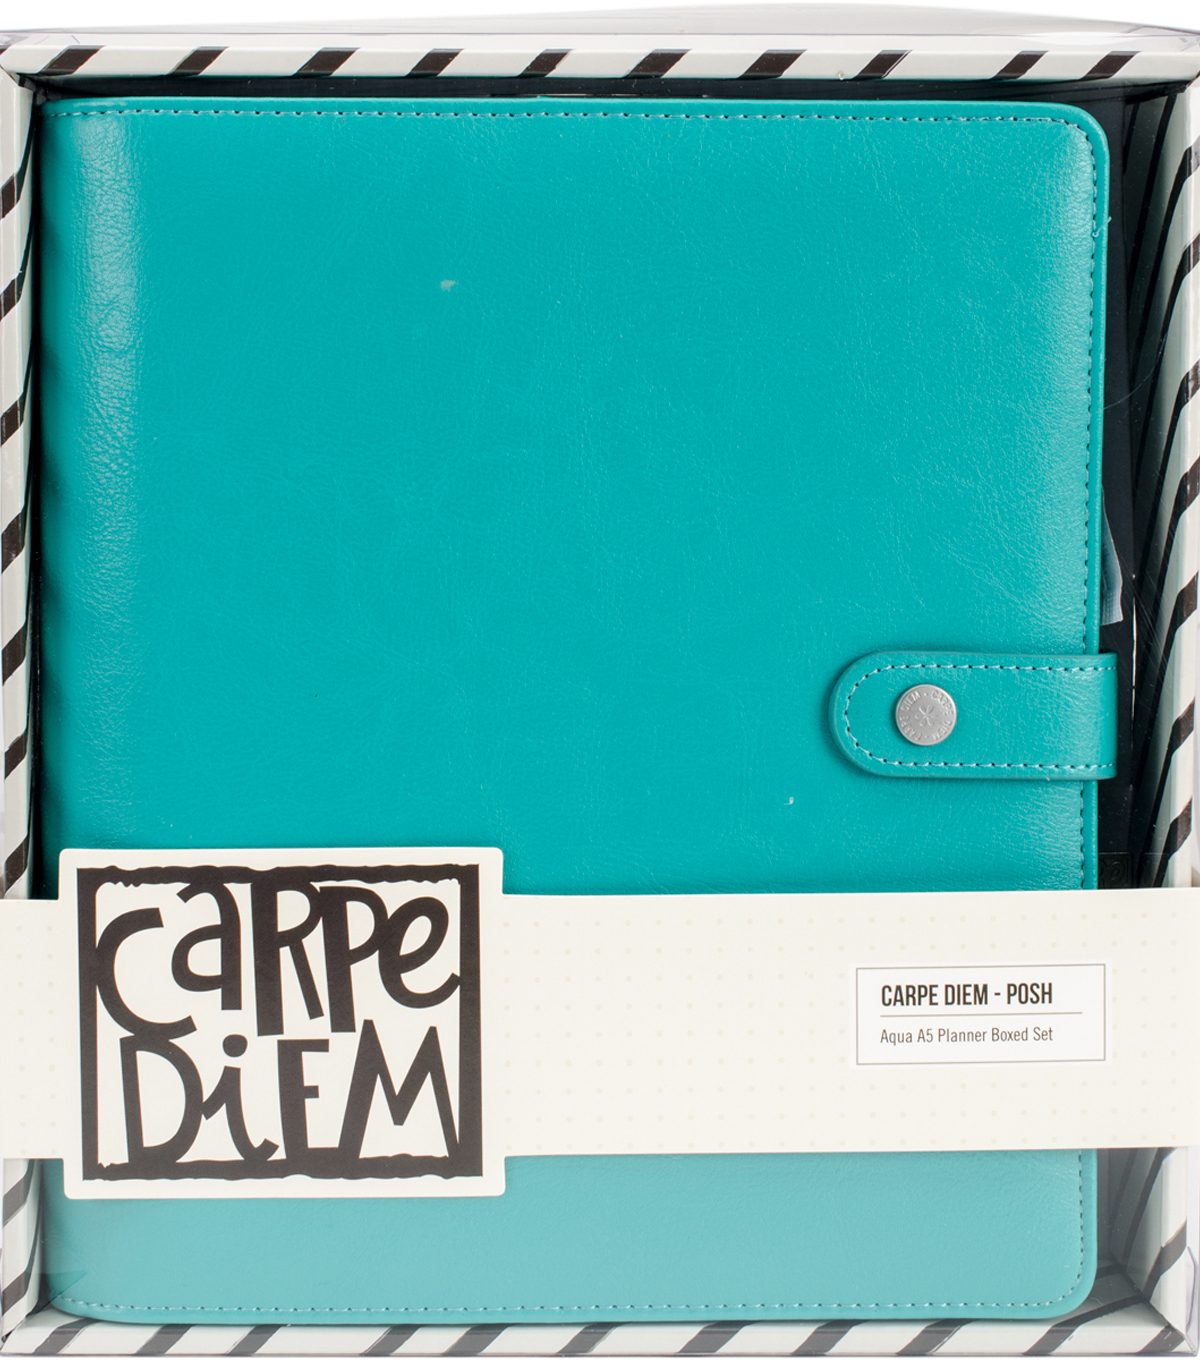 Carpe Diem A5 Planner Boxed Set-Aqua Posh